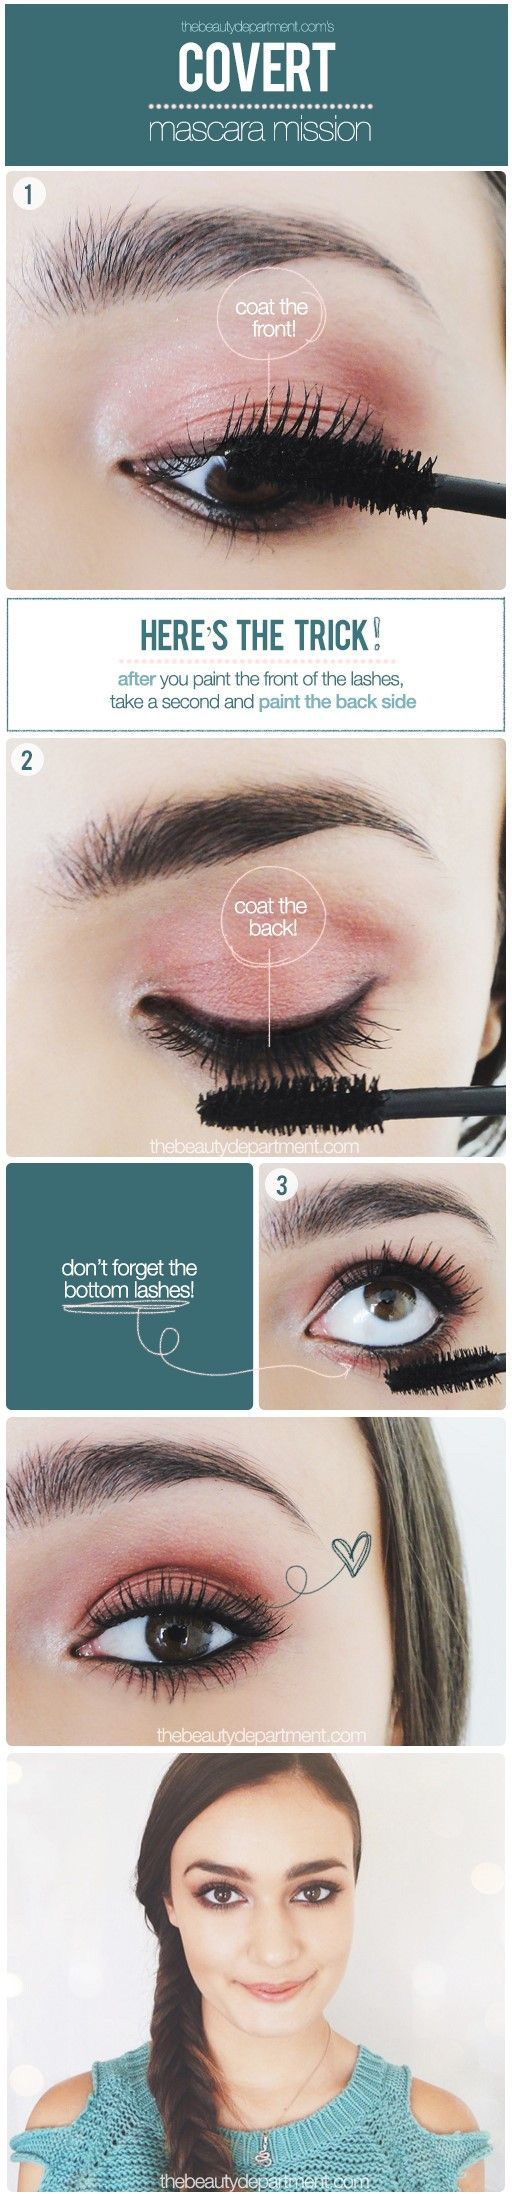 15 Makeup Tips And Tricks For Girls Who Wear Glasses Mascara Trickshow To  Apply